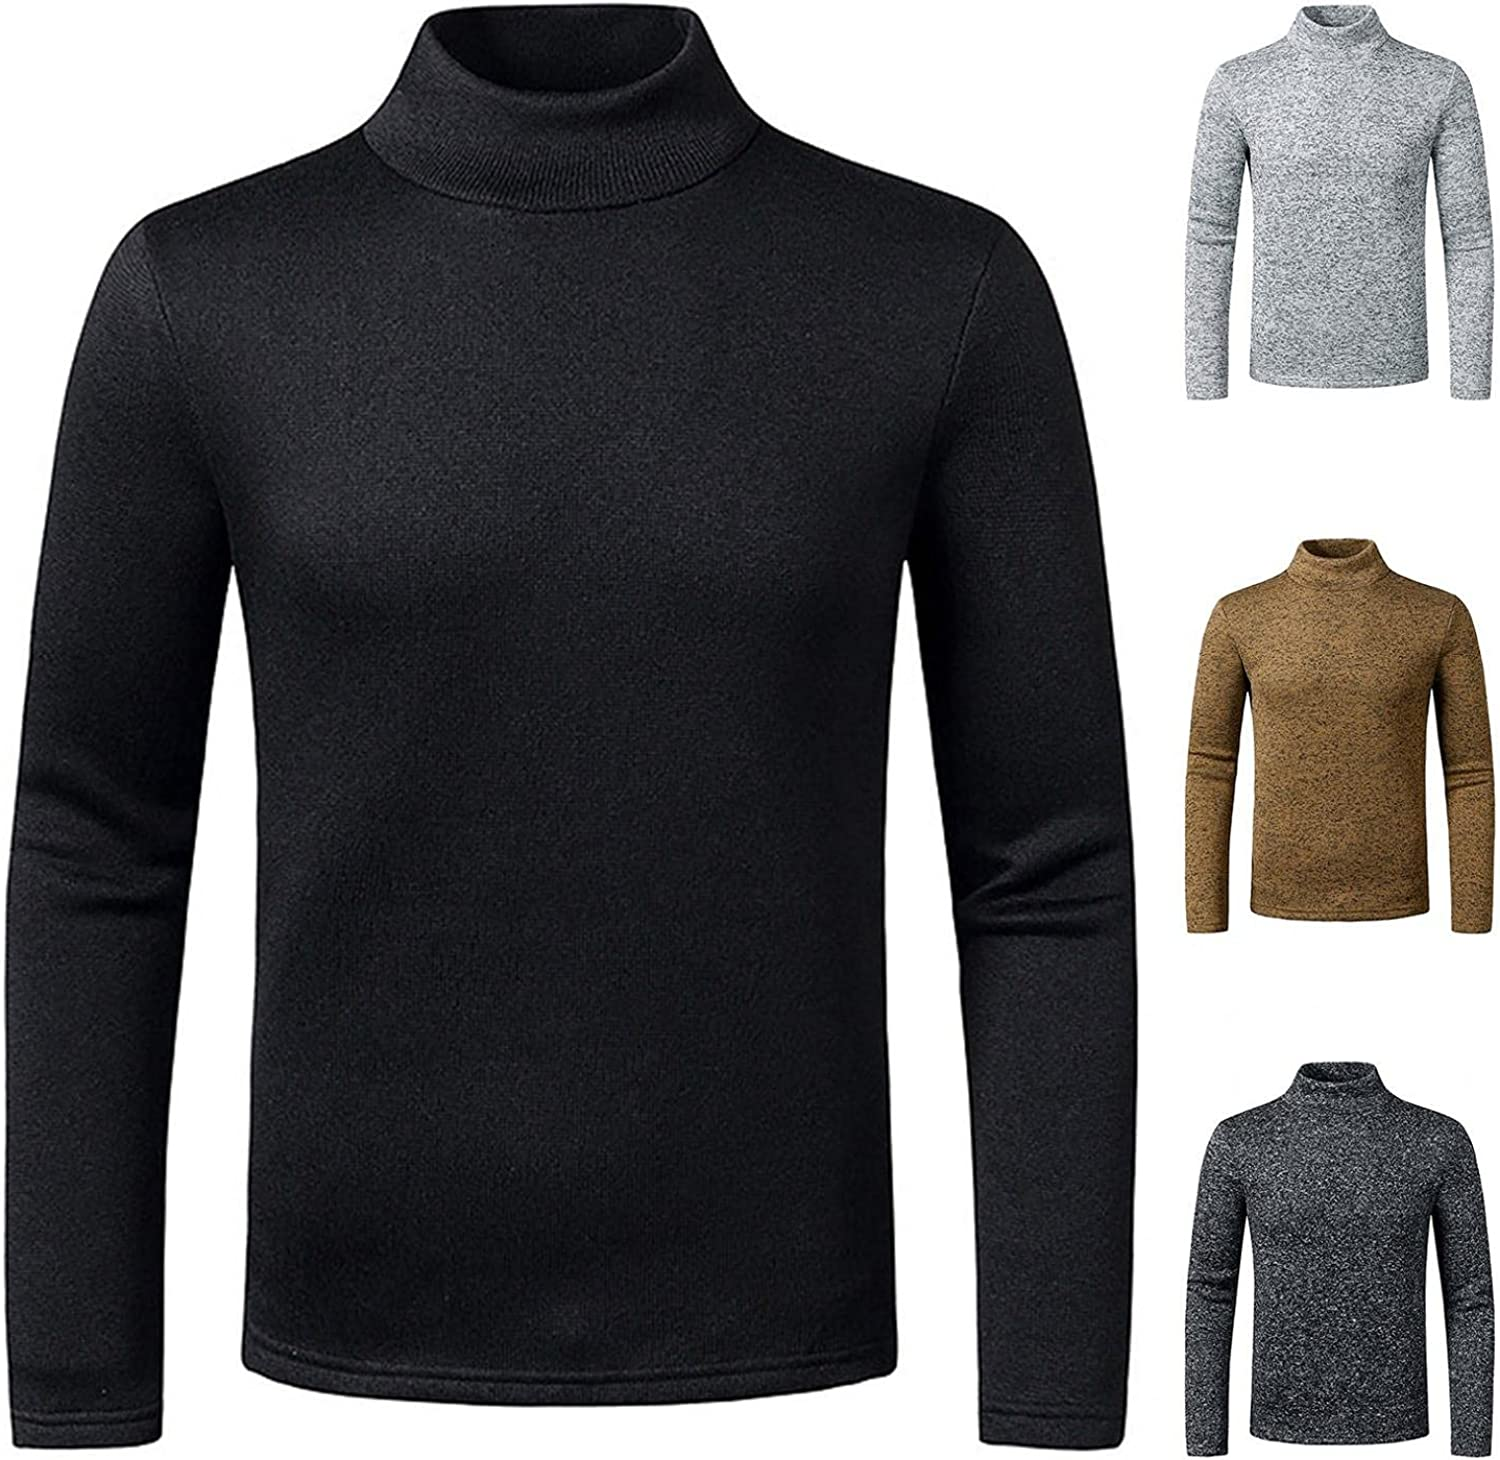 Men's Casual Slim Cotton Polyester Warm Special Campaign Half Alternative dealer Knitted High Basic